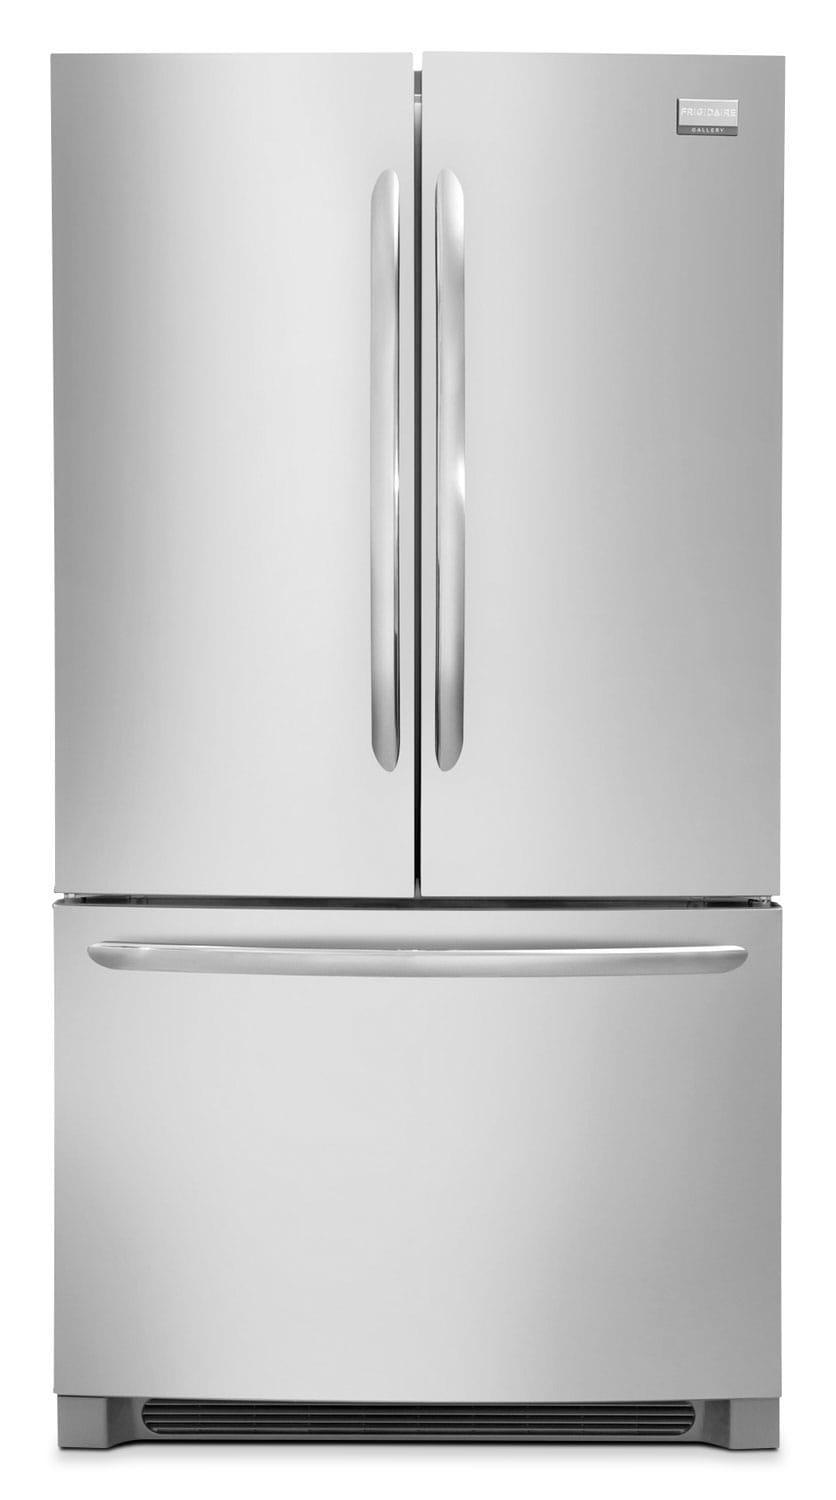 Frigidaire Gallery Stainless Steel French Door Refrigerator (27.7 Cu. Ft.) - FGHN2866PF